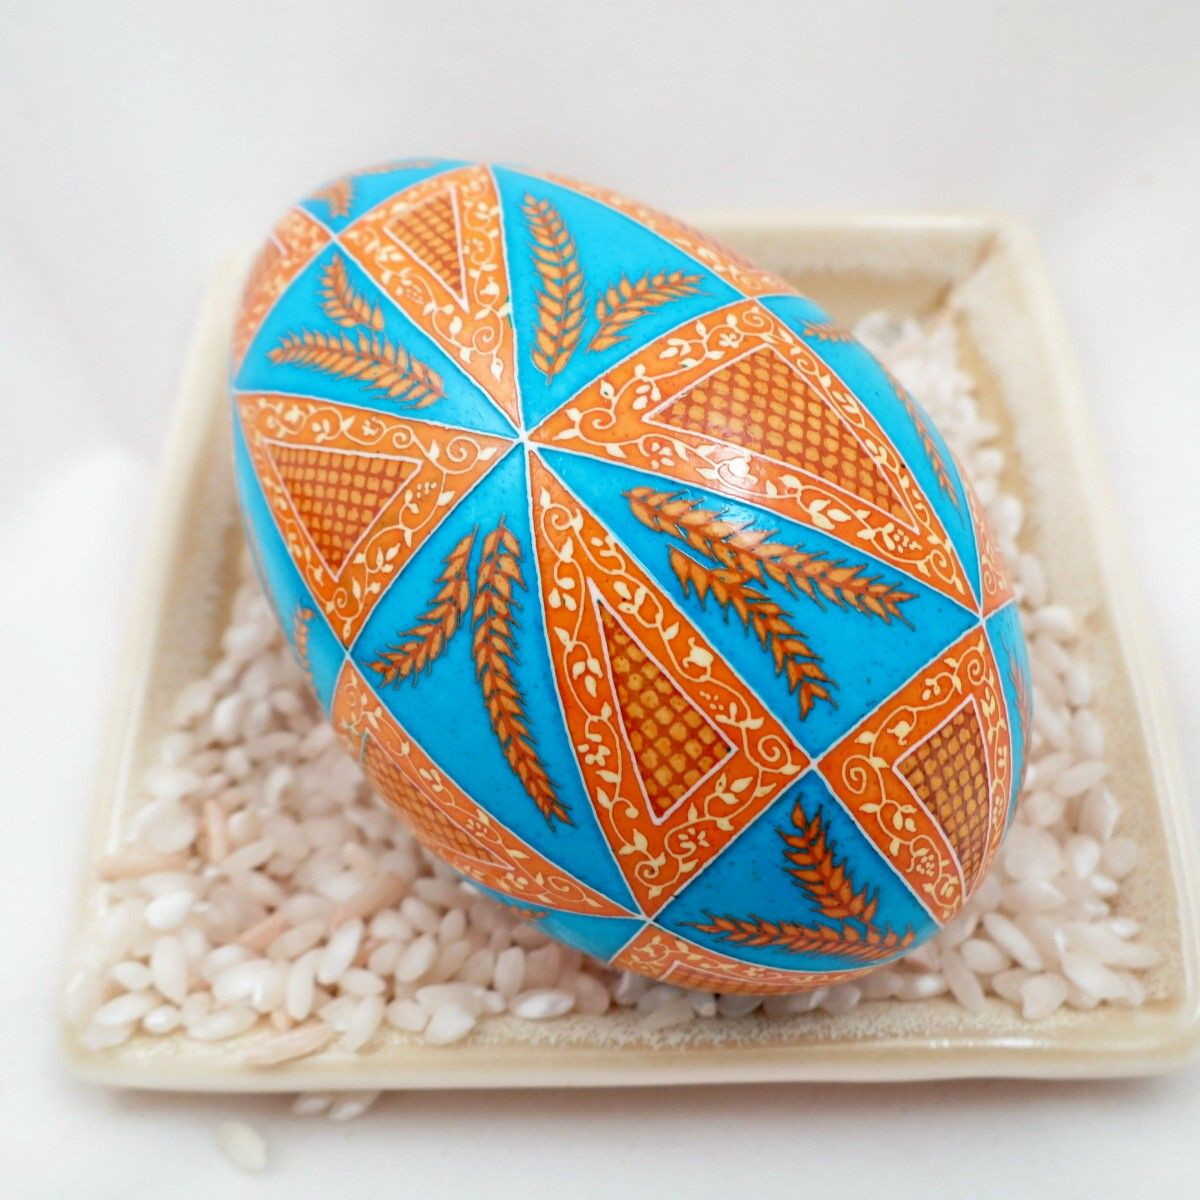 2015 Pysanky for Ukraine for peace and protection by Dore Douty